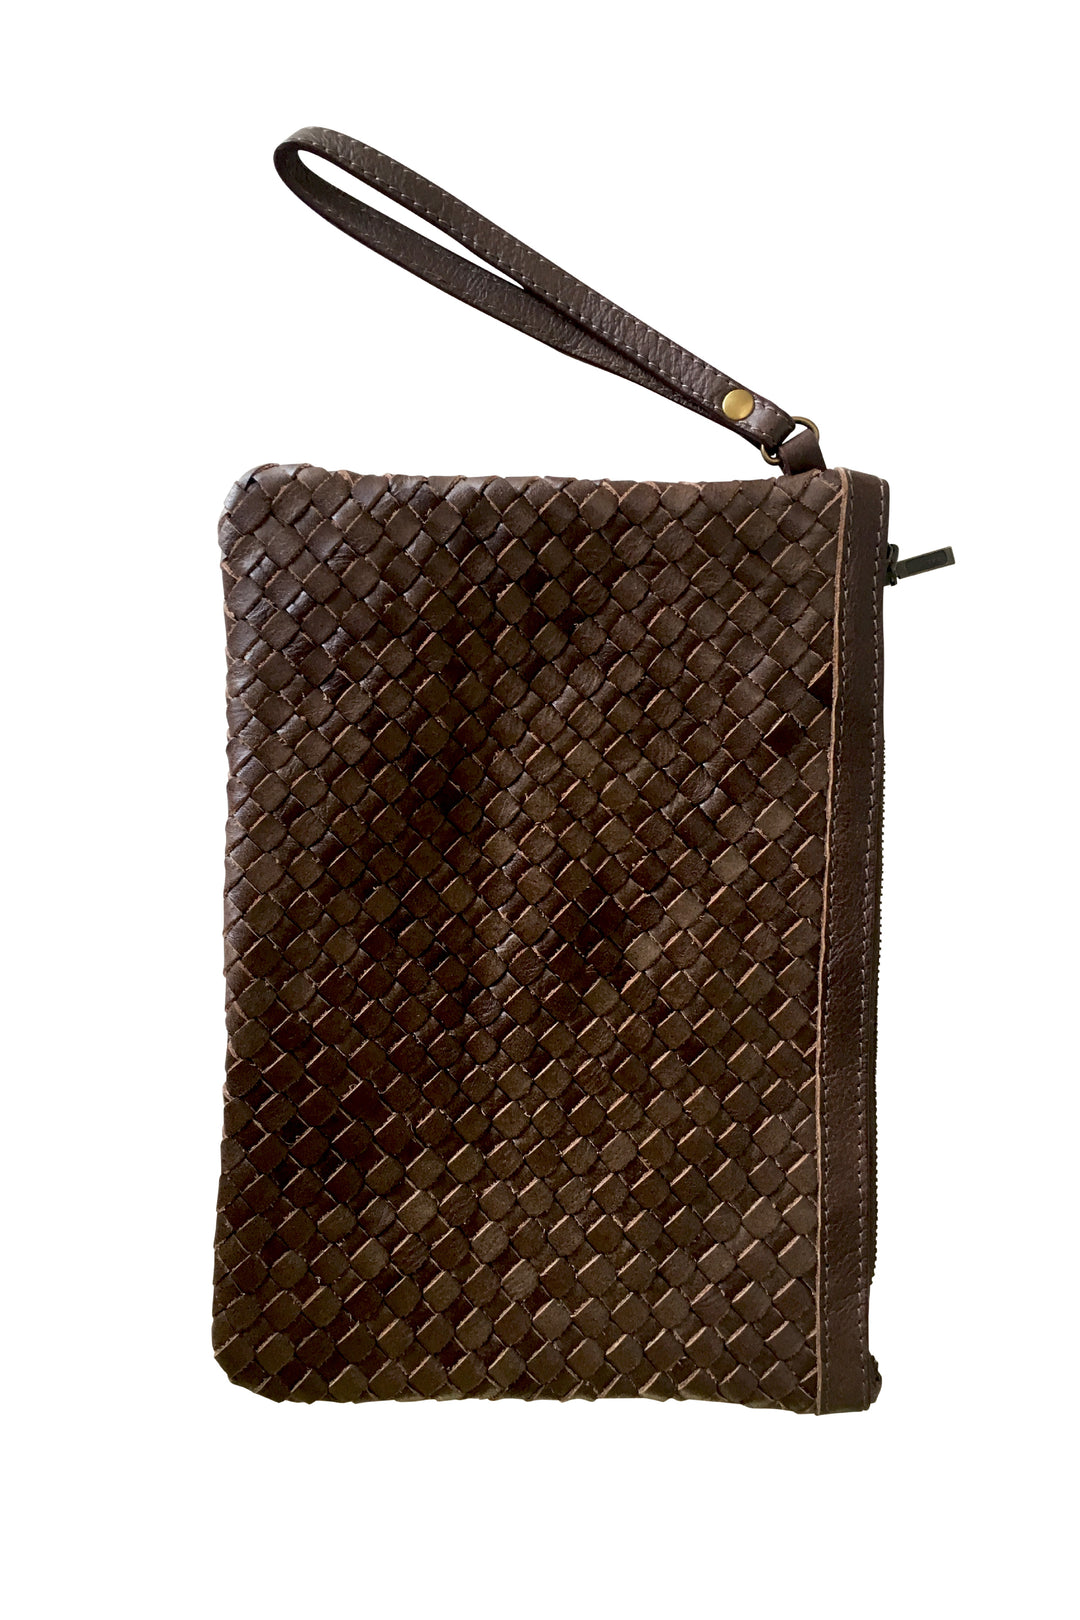 To have & to hold woven leather clutch